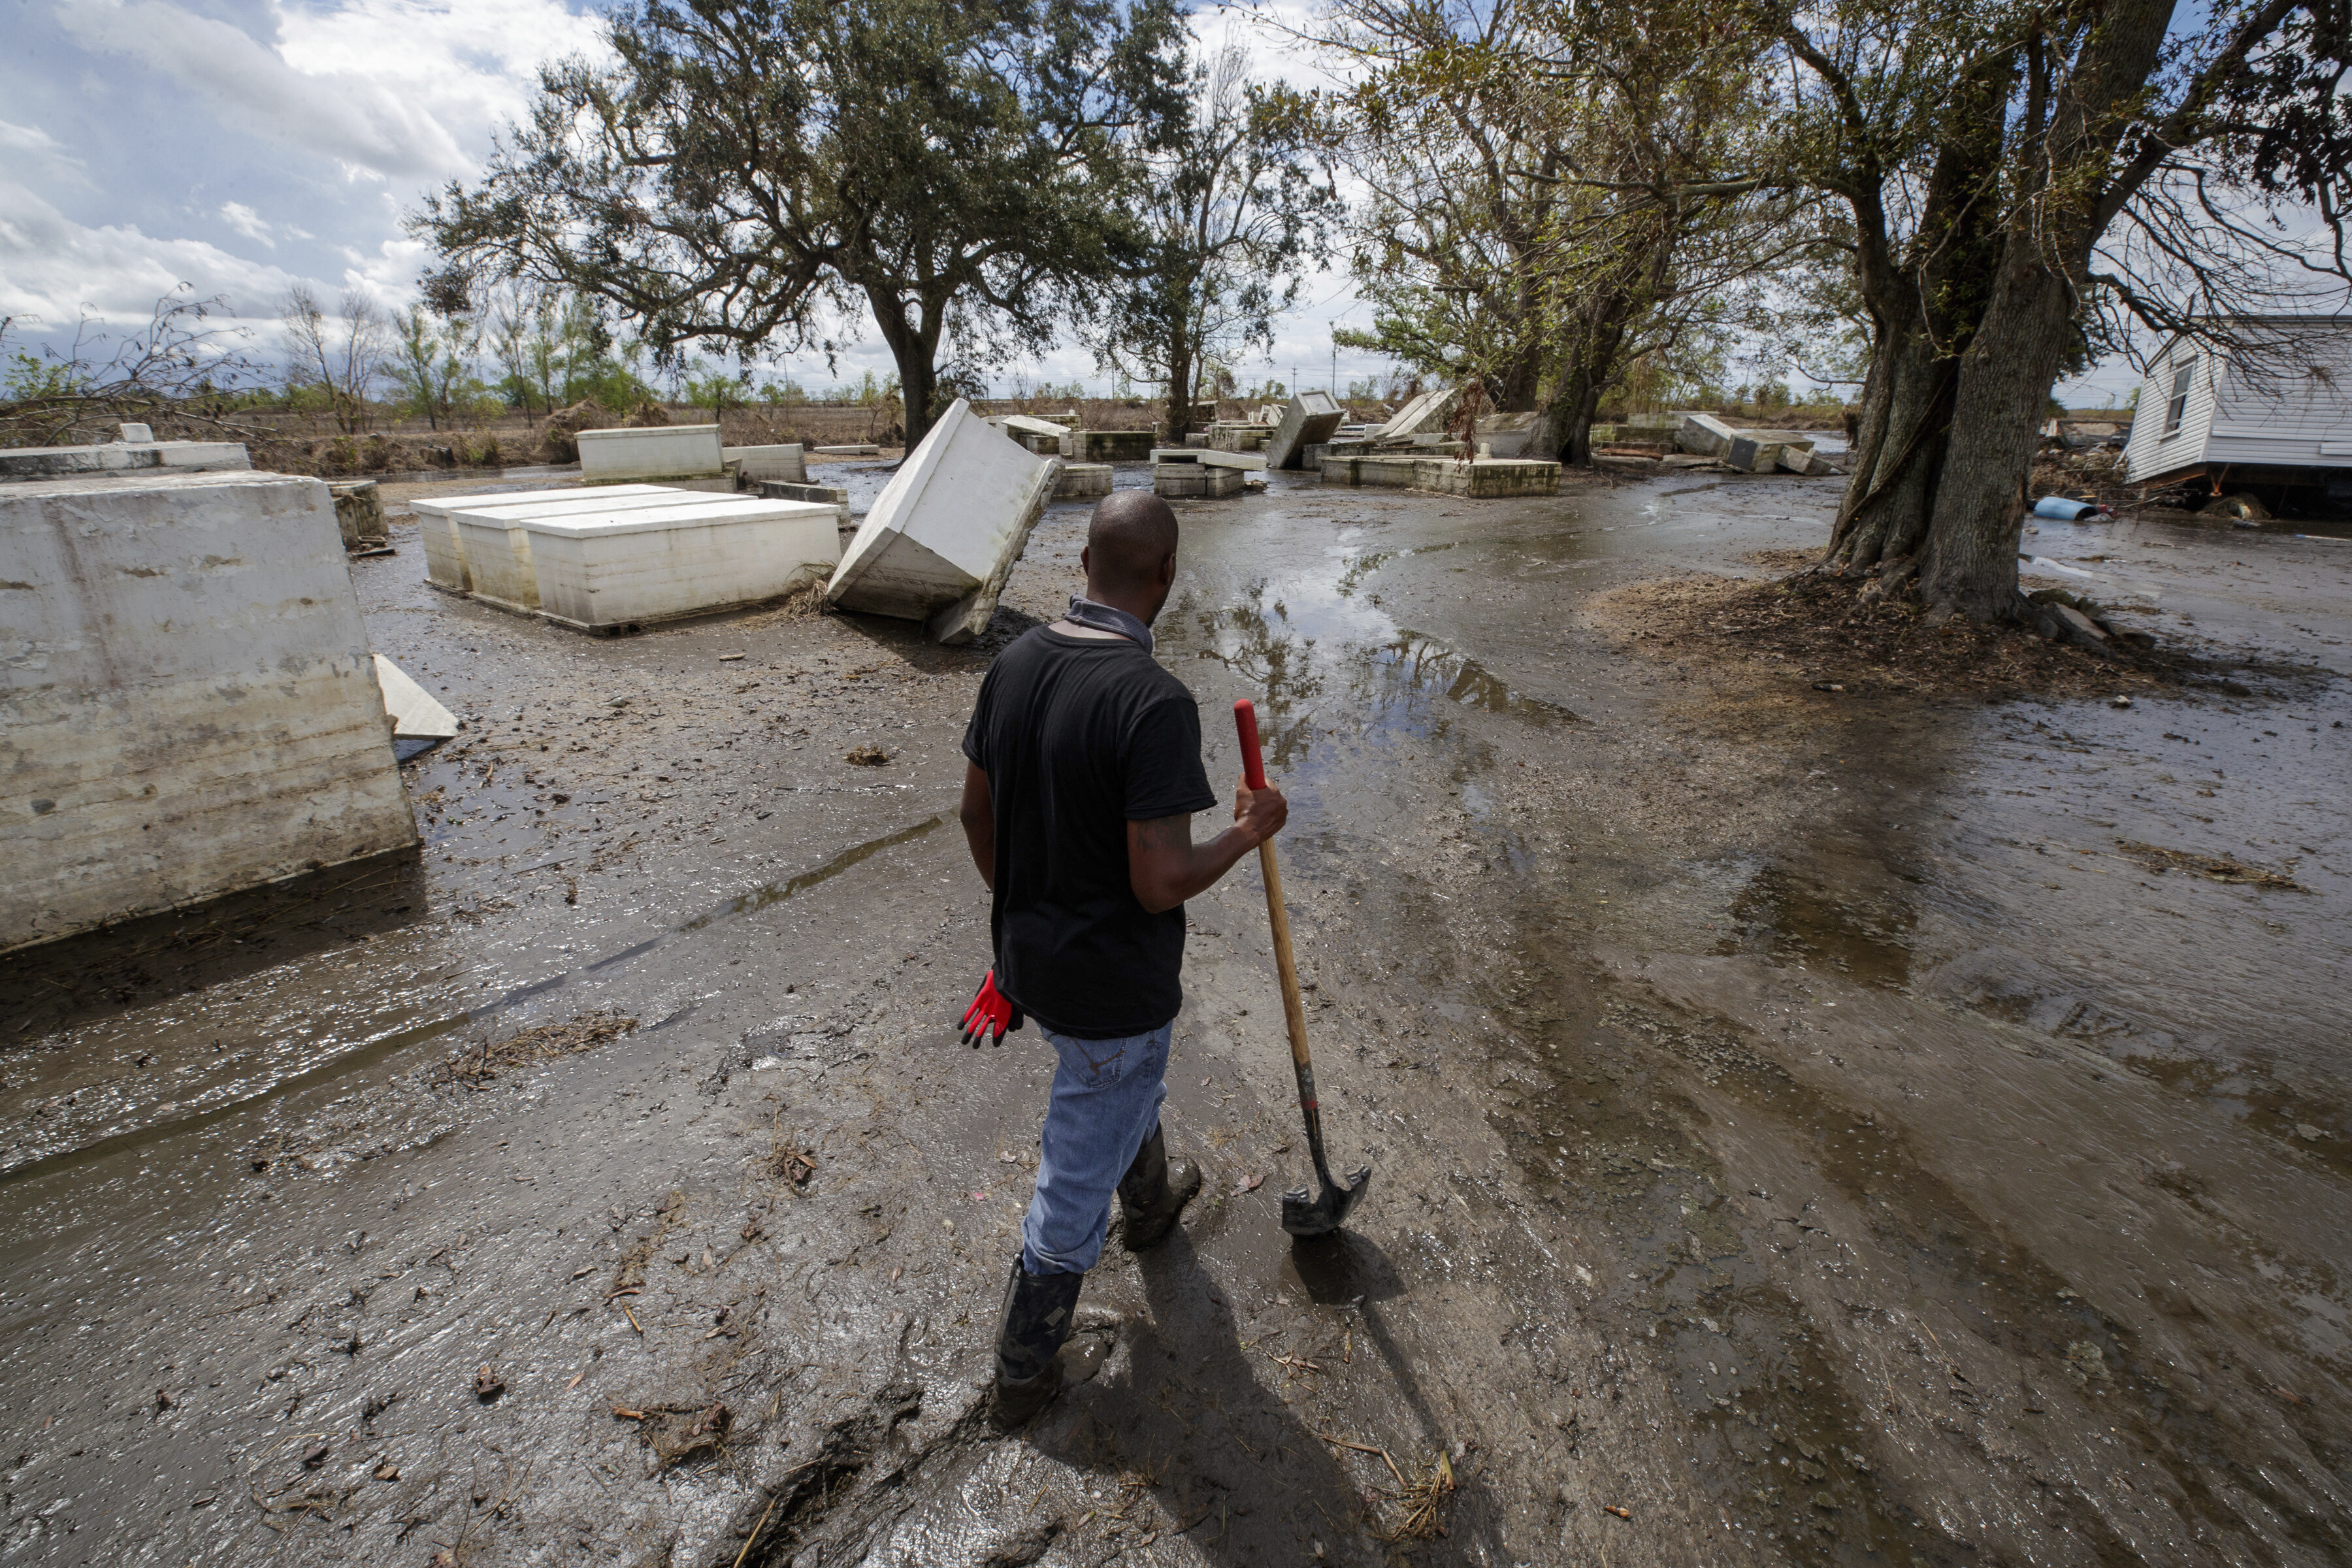 Caskets are still scattered around a Louisiana community as residents struggle to recover from Hurricane Ida